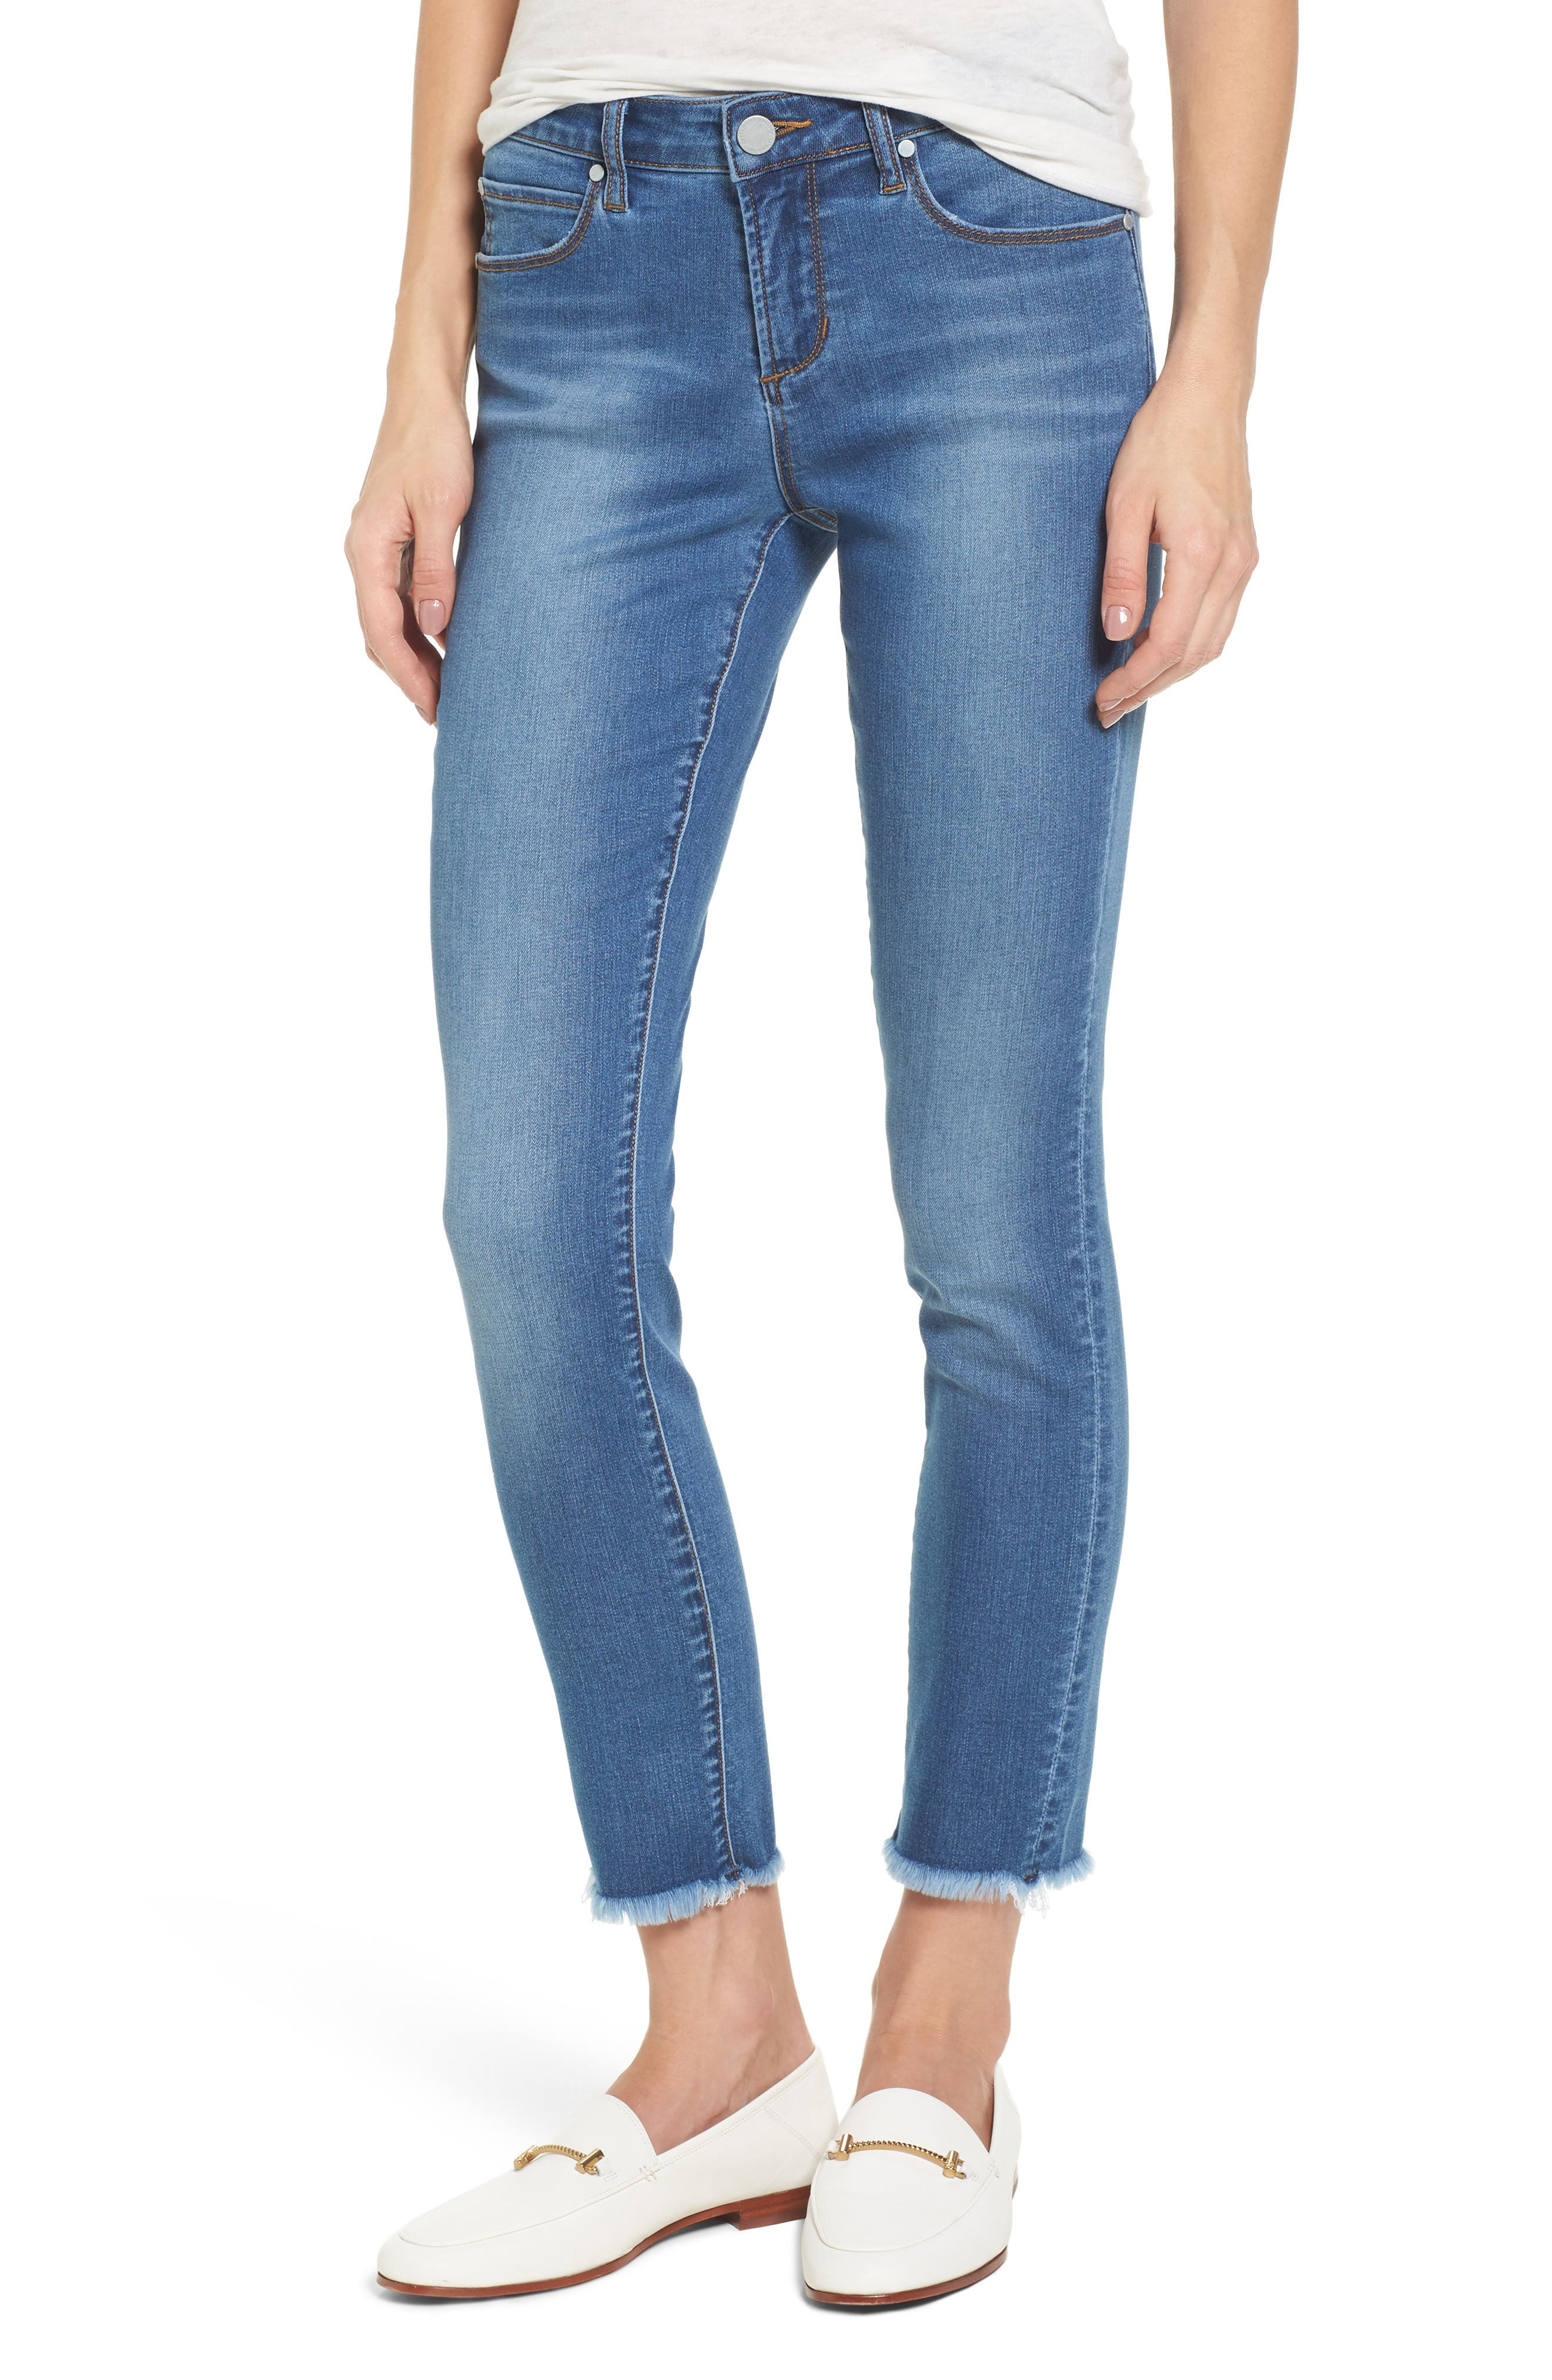 Carly Ankle Skinny Jeans,                         Main,                         color, 400